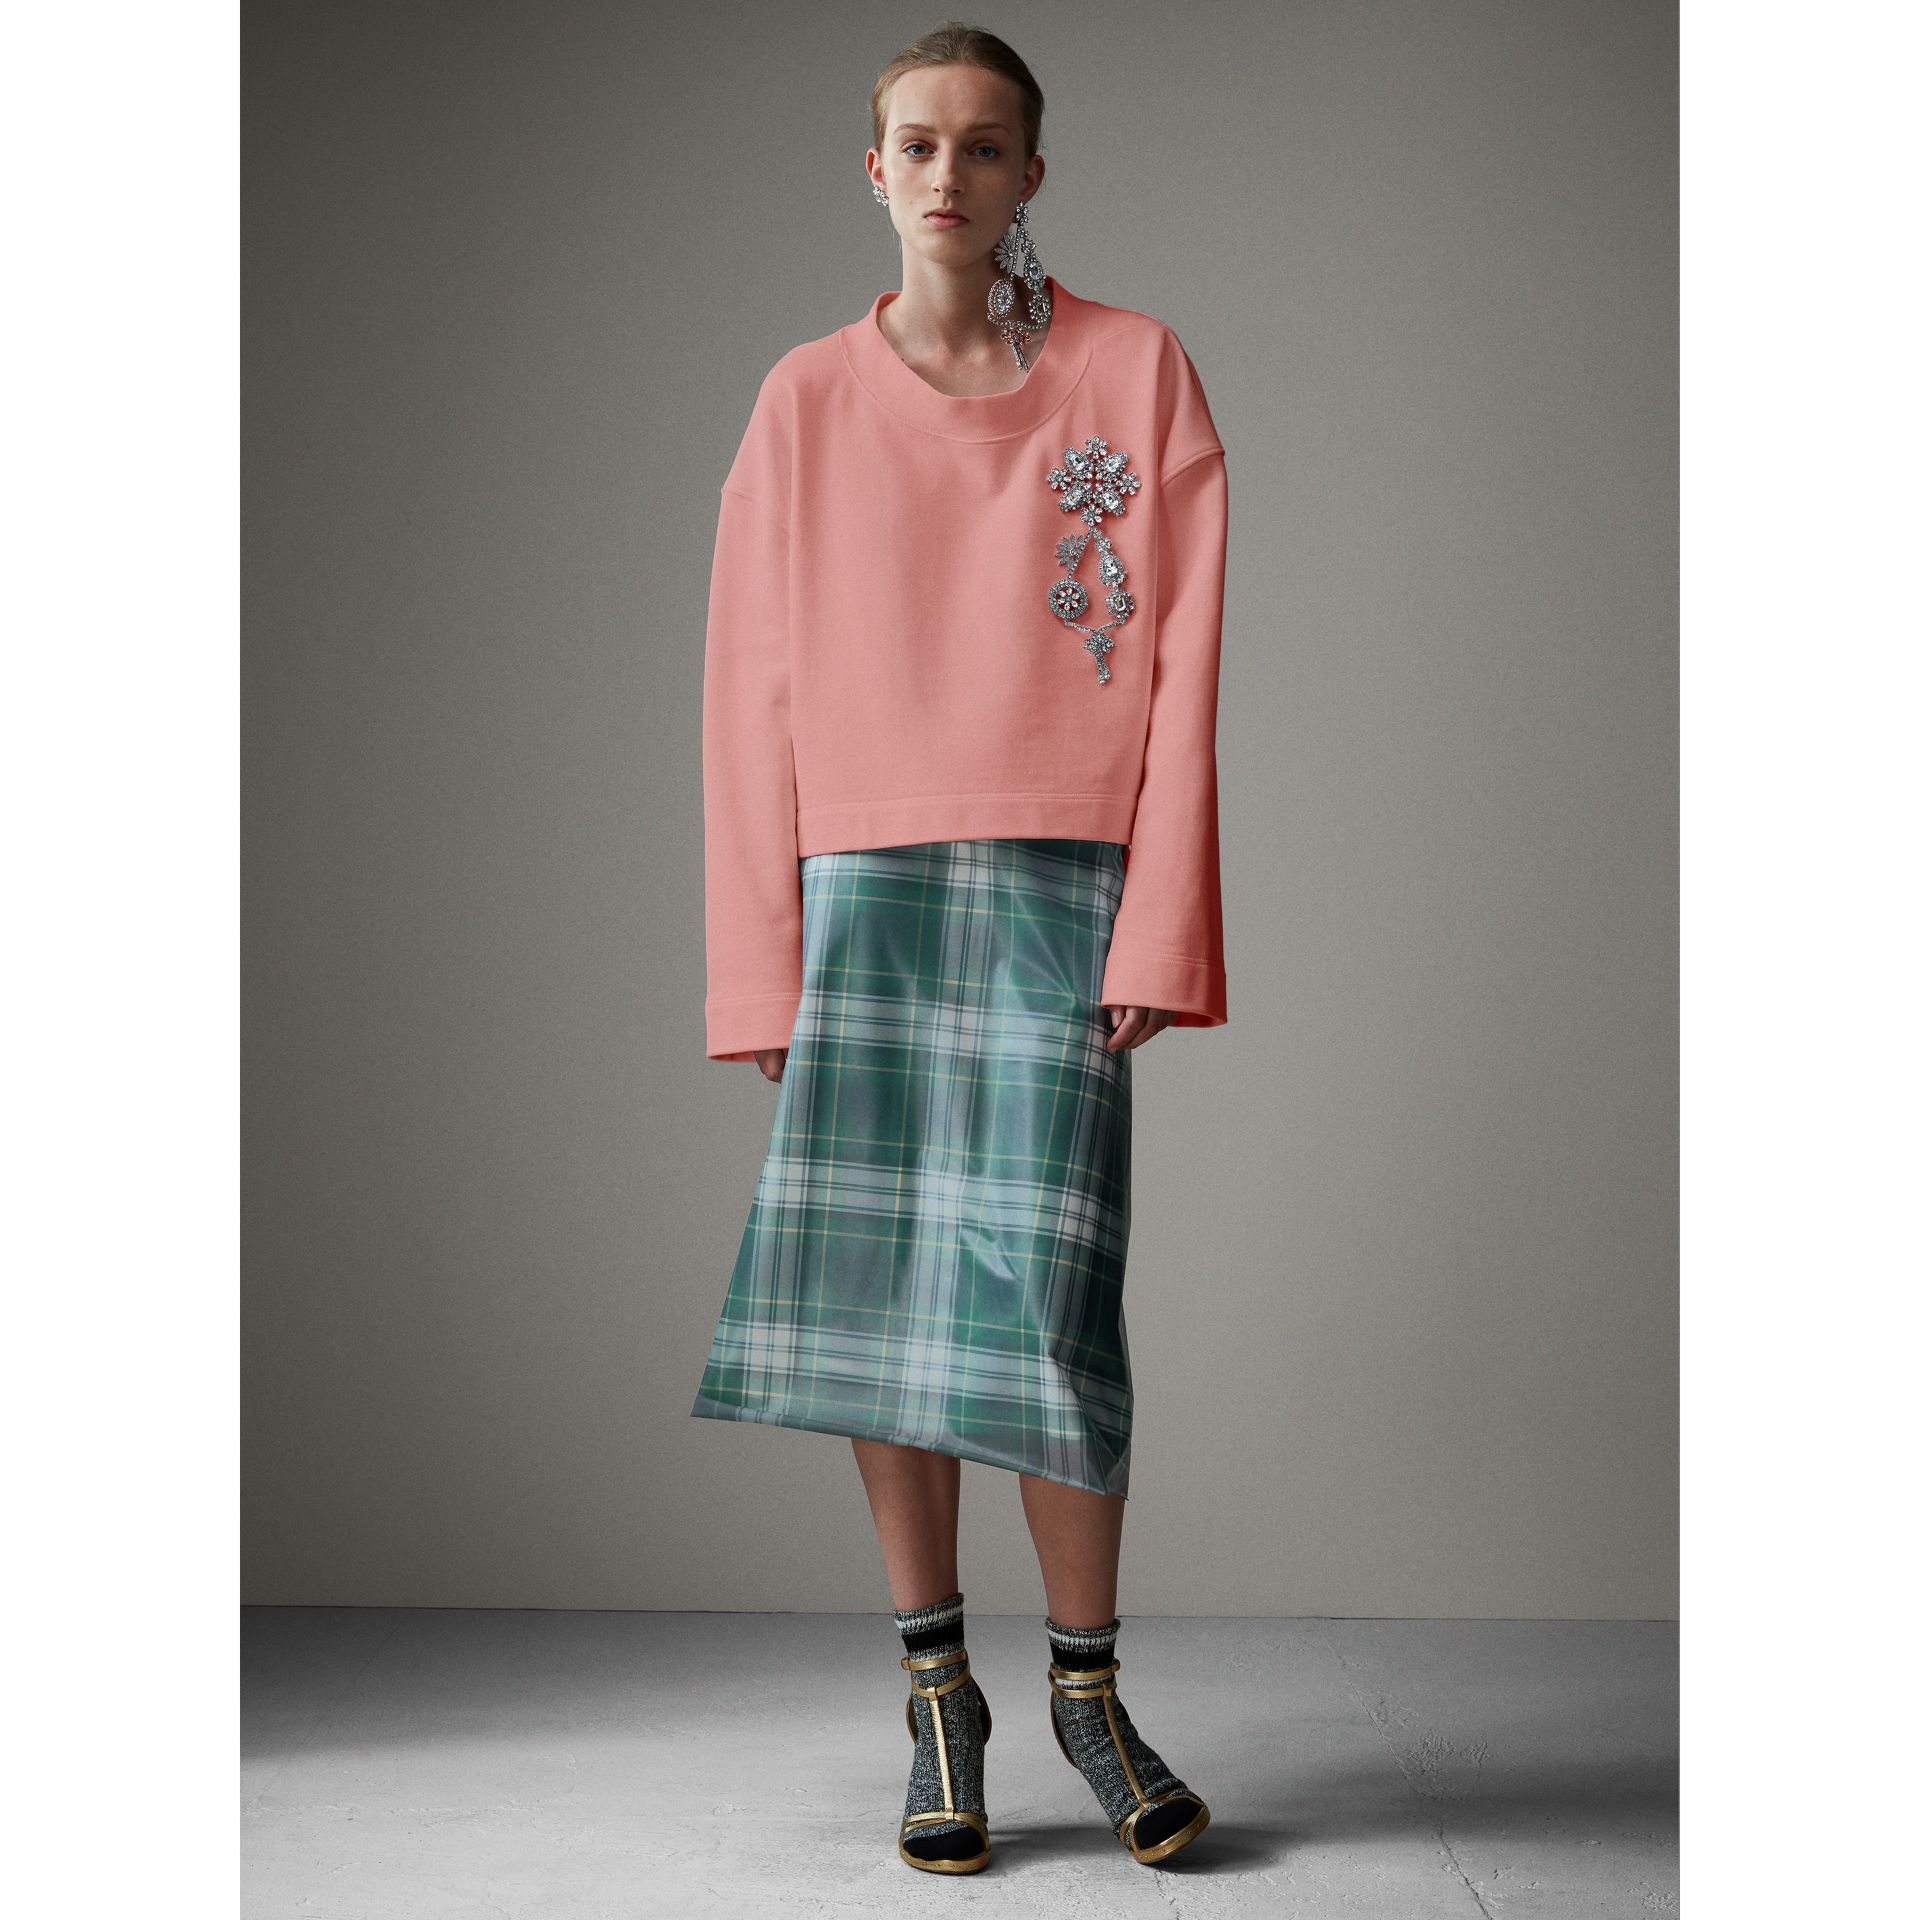 Sweat-shirt court avec broche en cristal (Rose Vintage) - Femme | Burberry - photo de la galerie 4